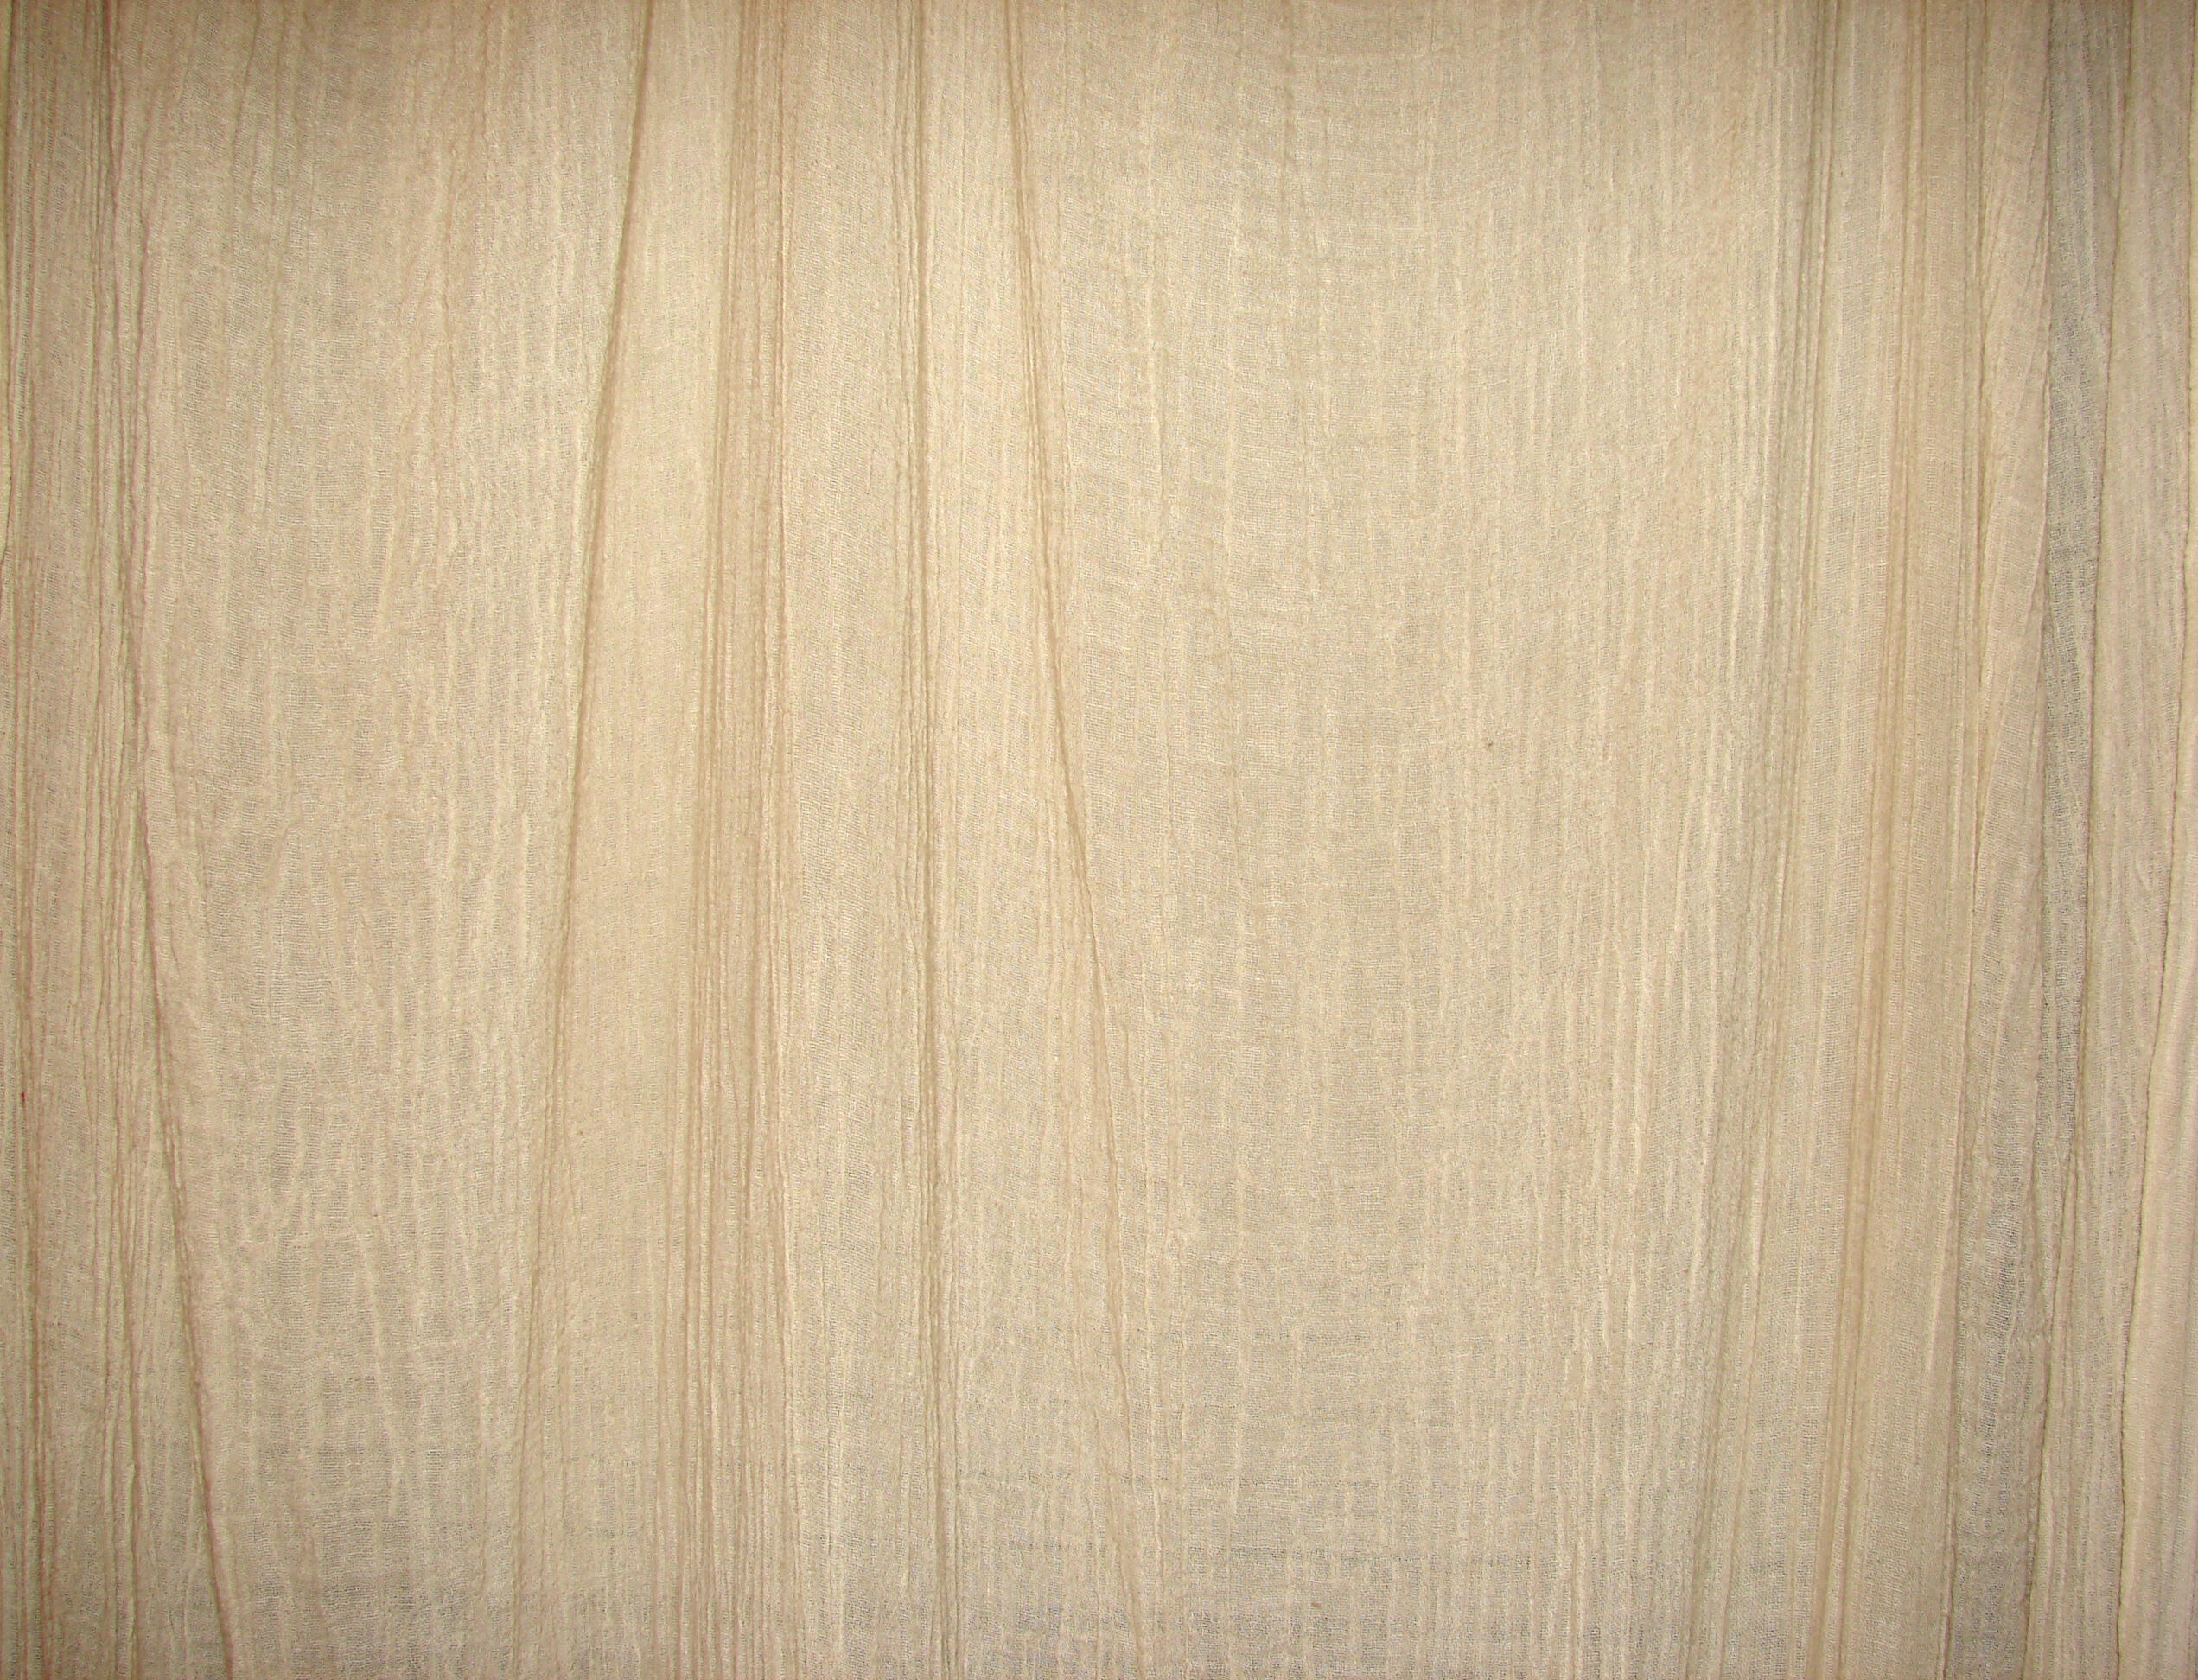 Curtain Texture Seamless ivory curtain cloth texturefantasystock on deviantart